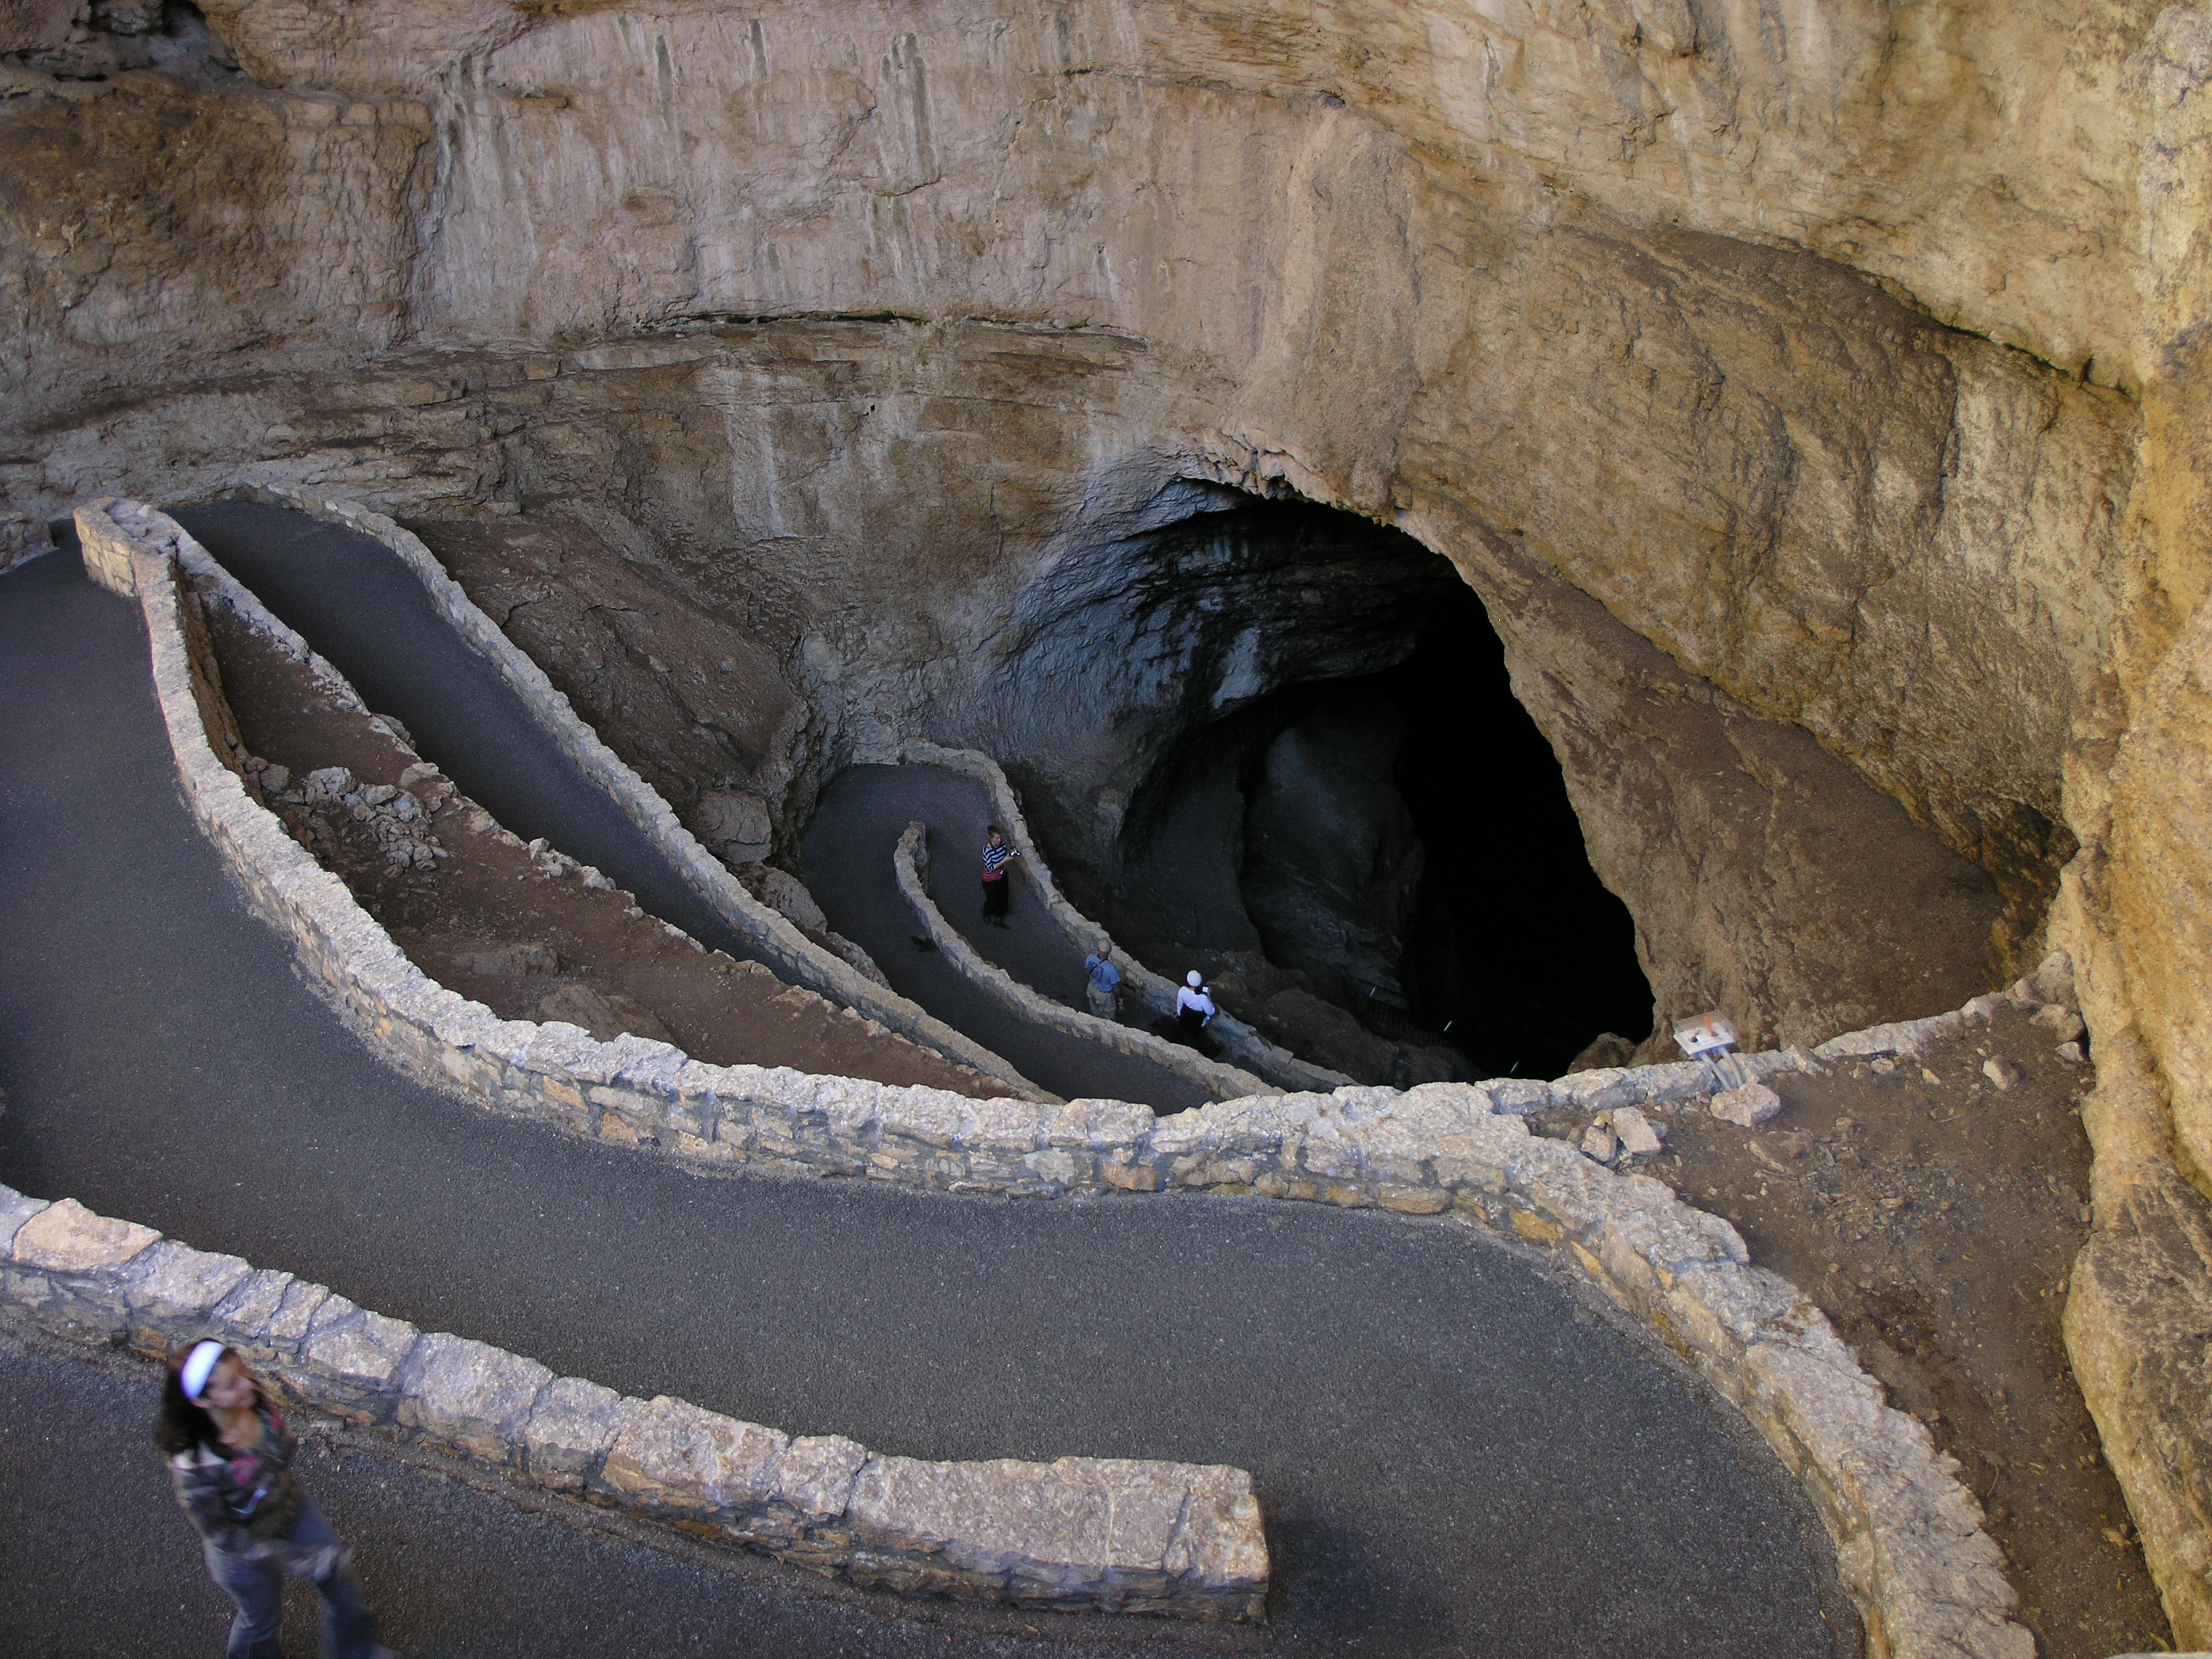 File:Switchbacks in Carlsbad Cavern.JPG - Wikimedia Commons